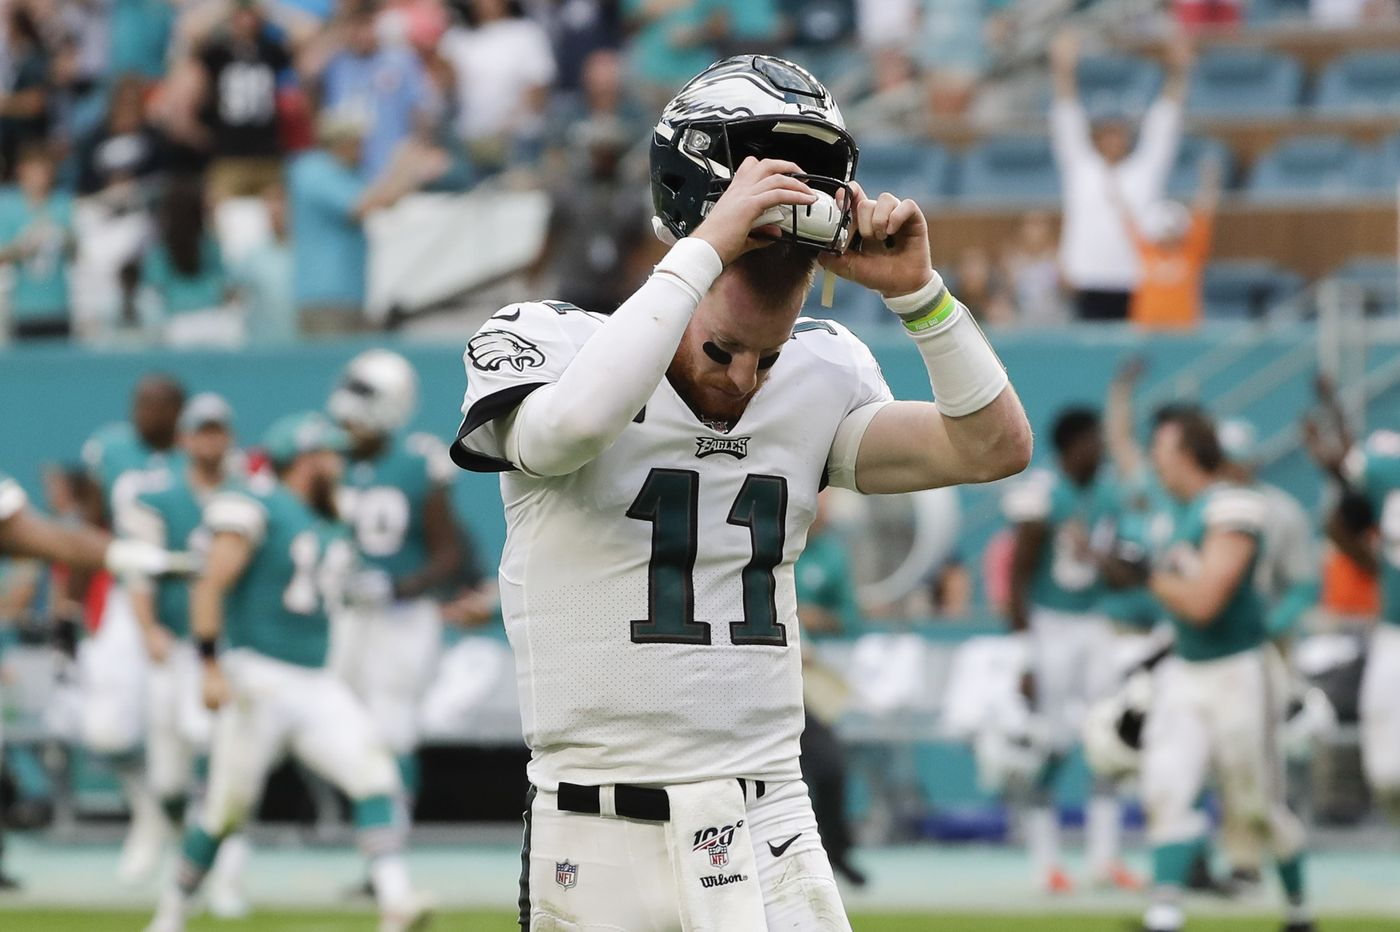 Carson Wentz must find his 'clutch gene' and start winning late if he's the Eagles' franchise quarterback | Marcus Hayes